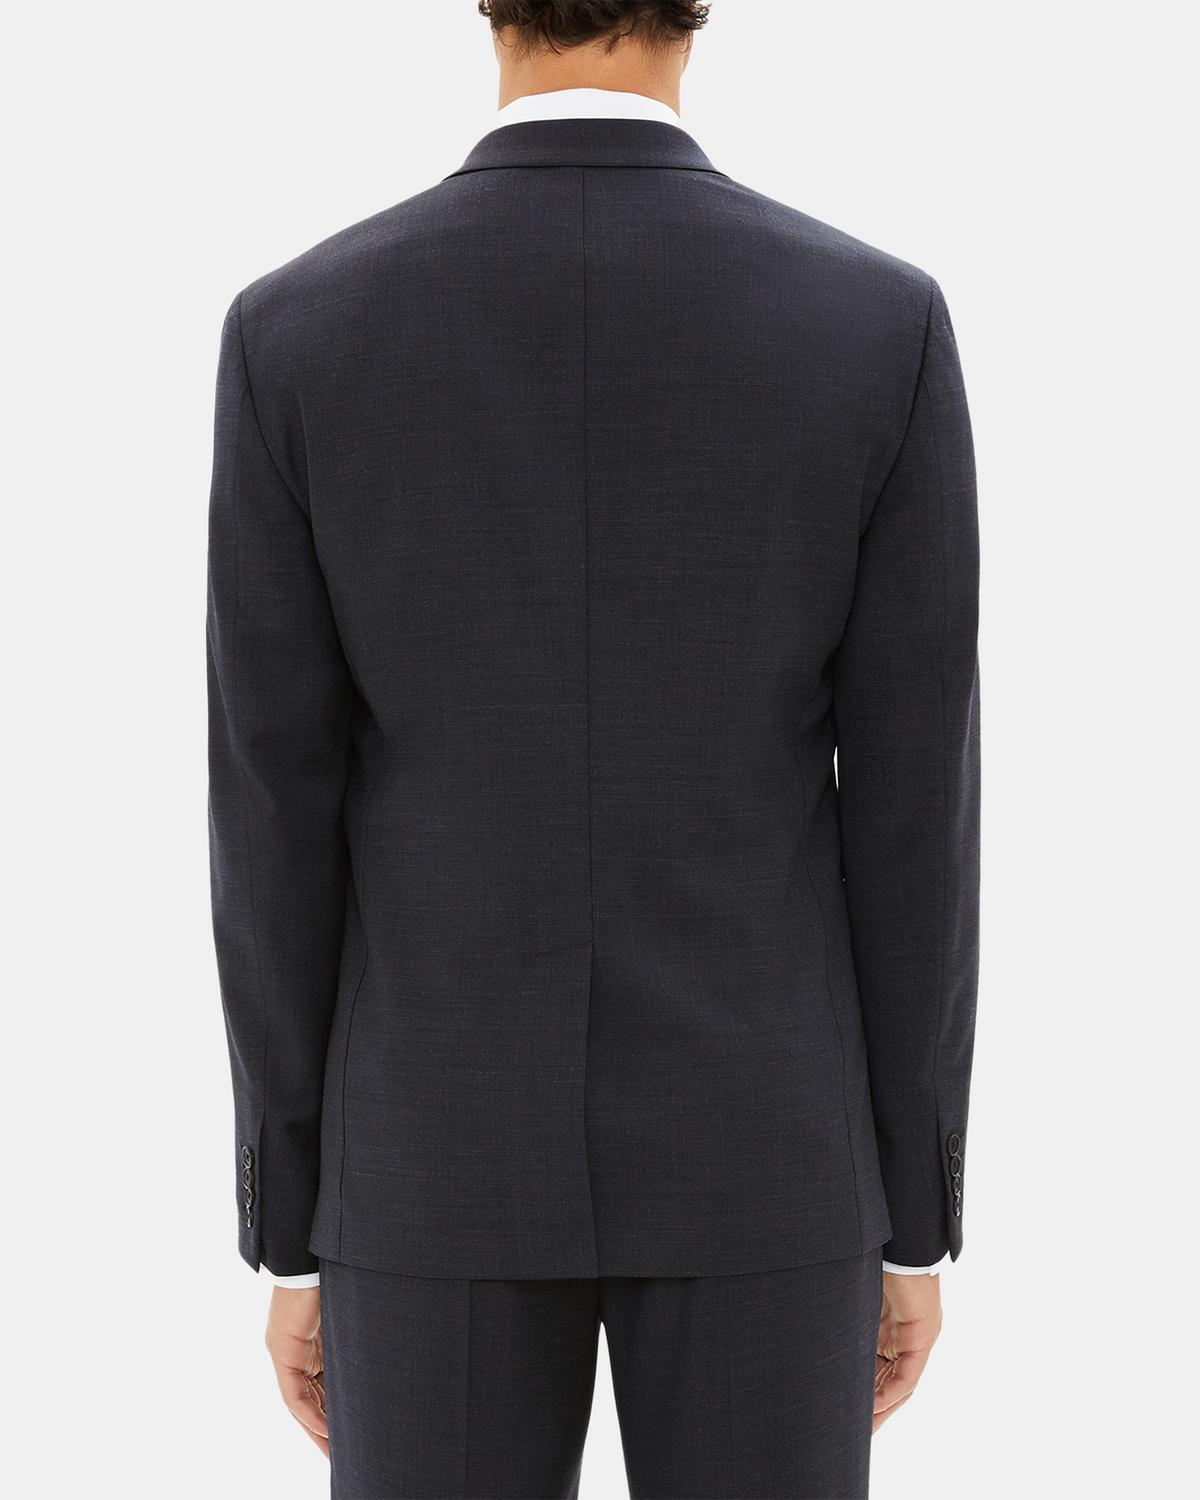 Stretch Wool Gansevoort Jacket